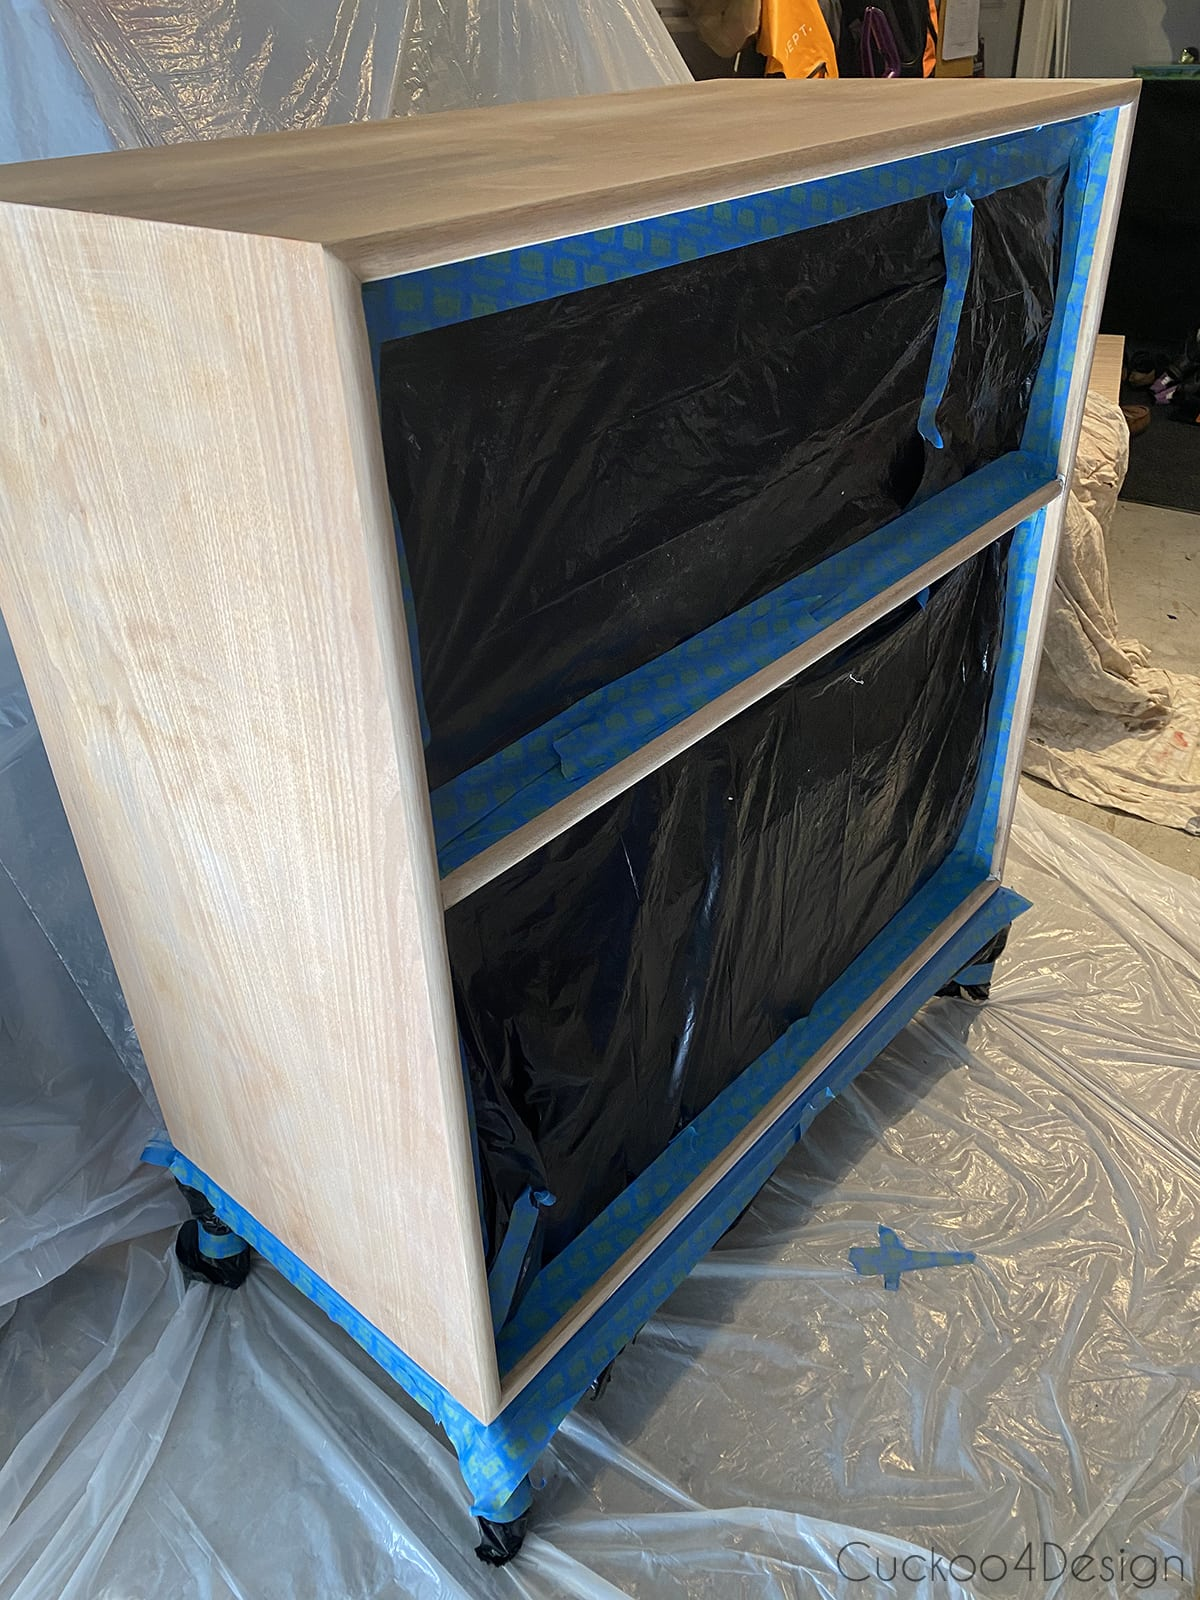 taped and sealed drawer cubbies before painting